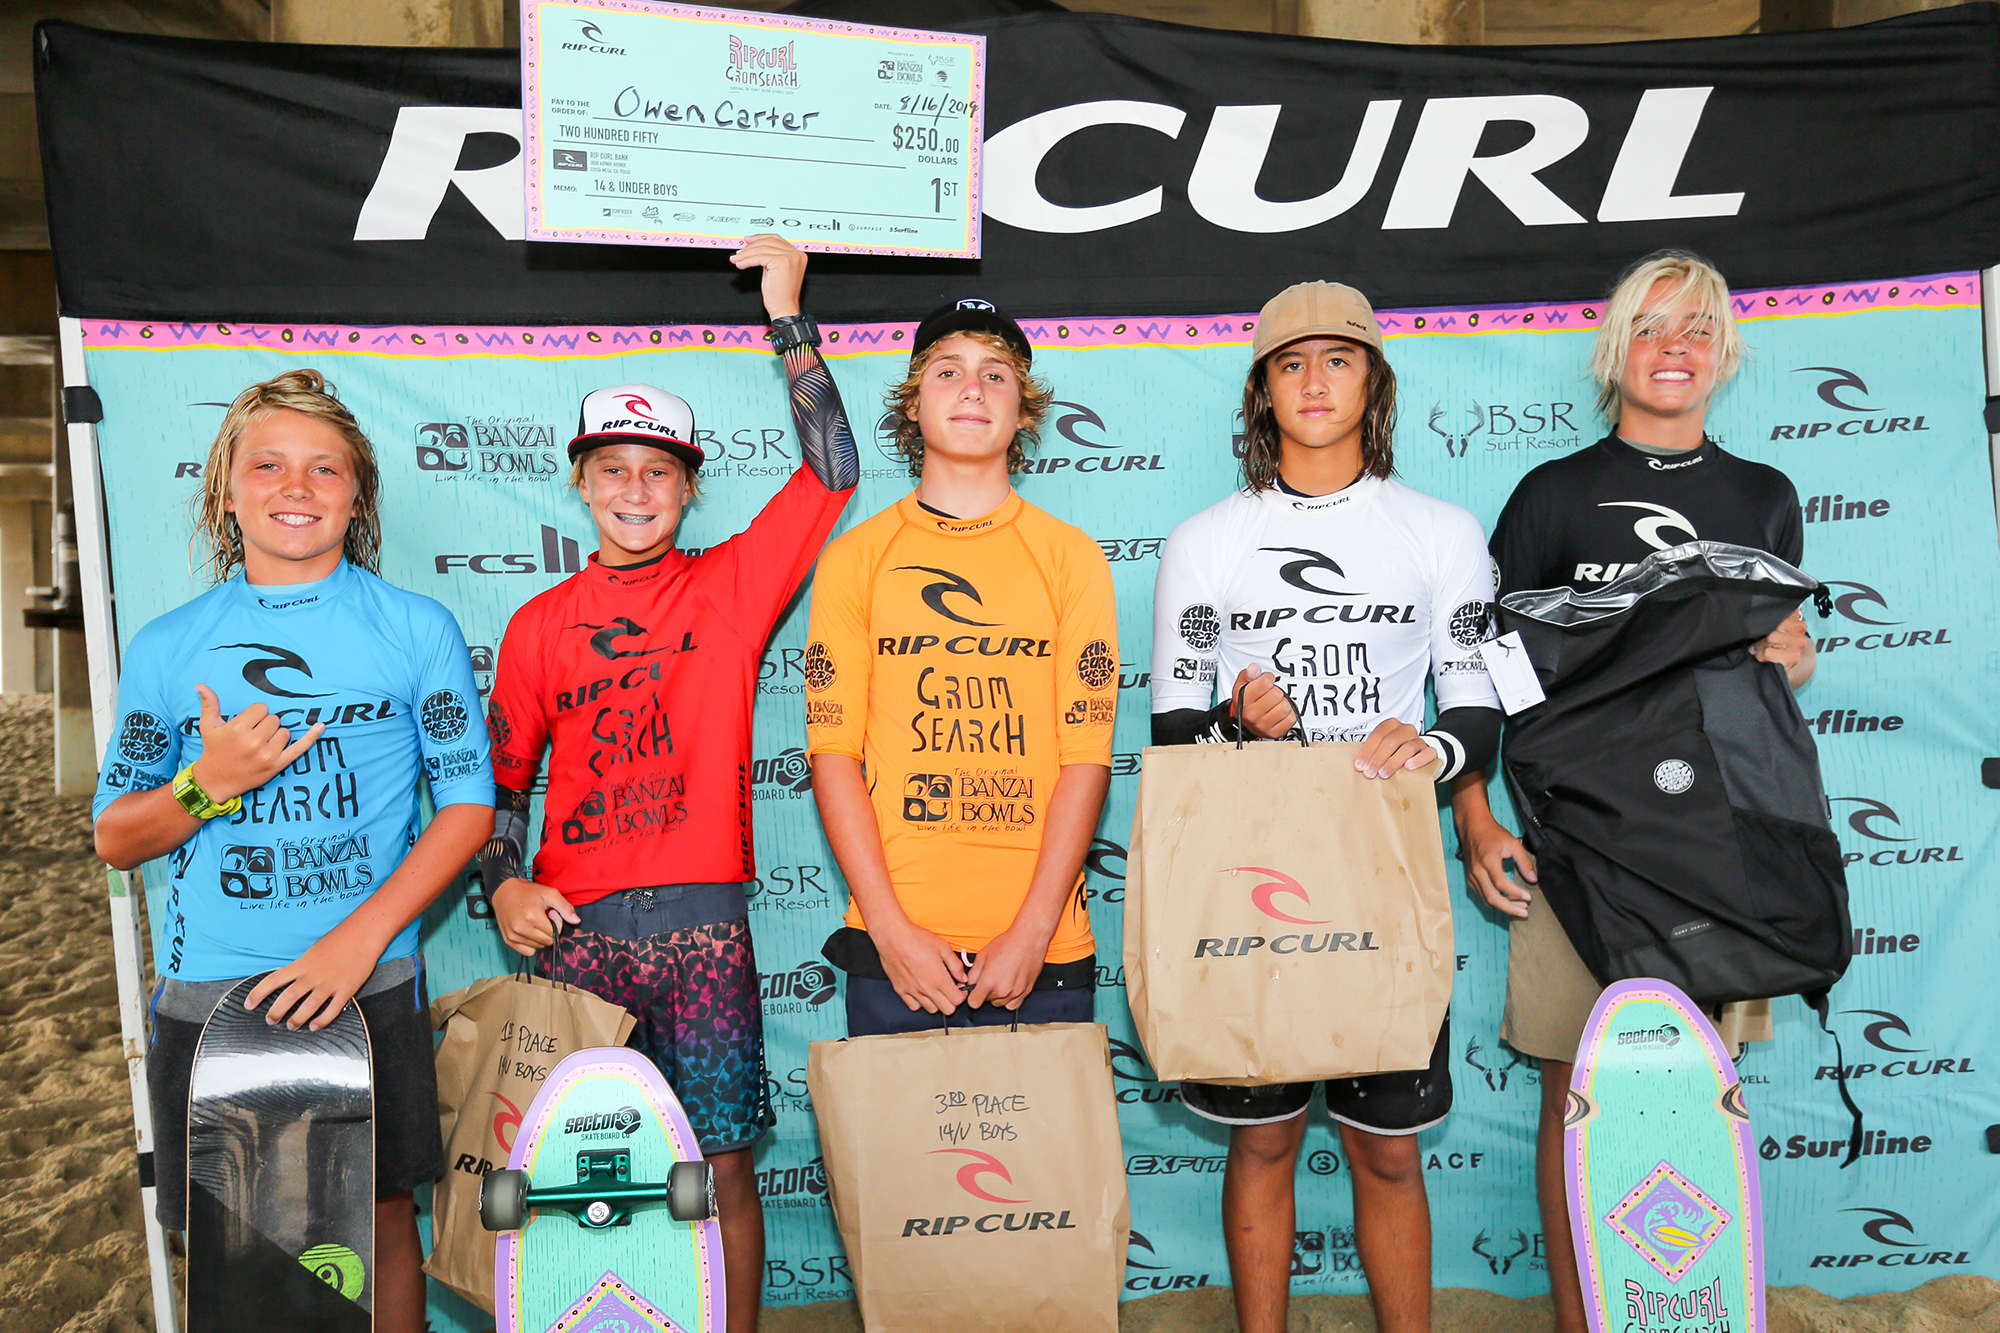 Two IWS Team Riders Qualify for the Rip Curl Grom Search